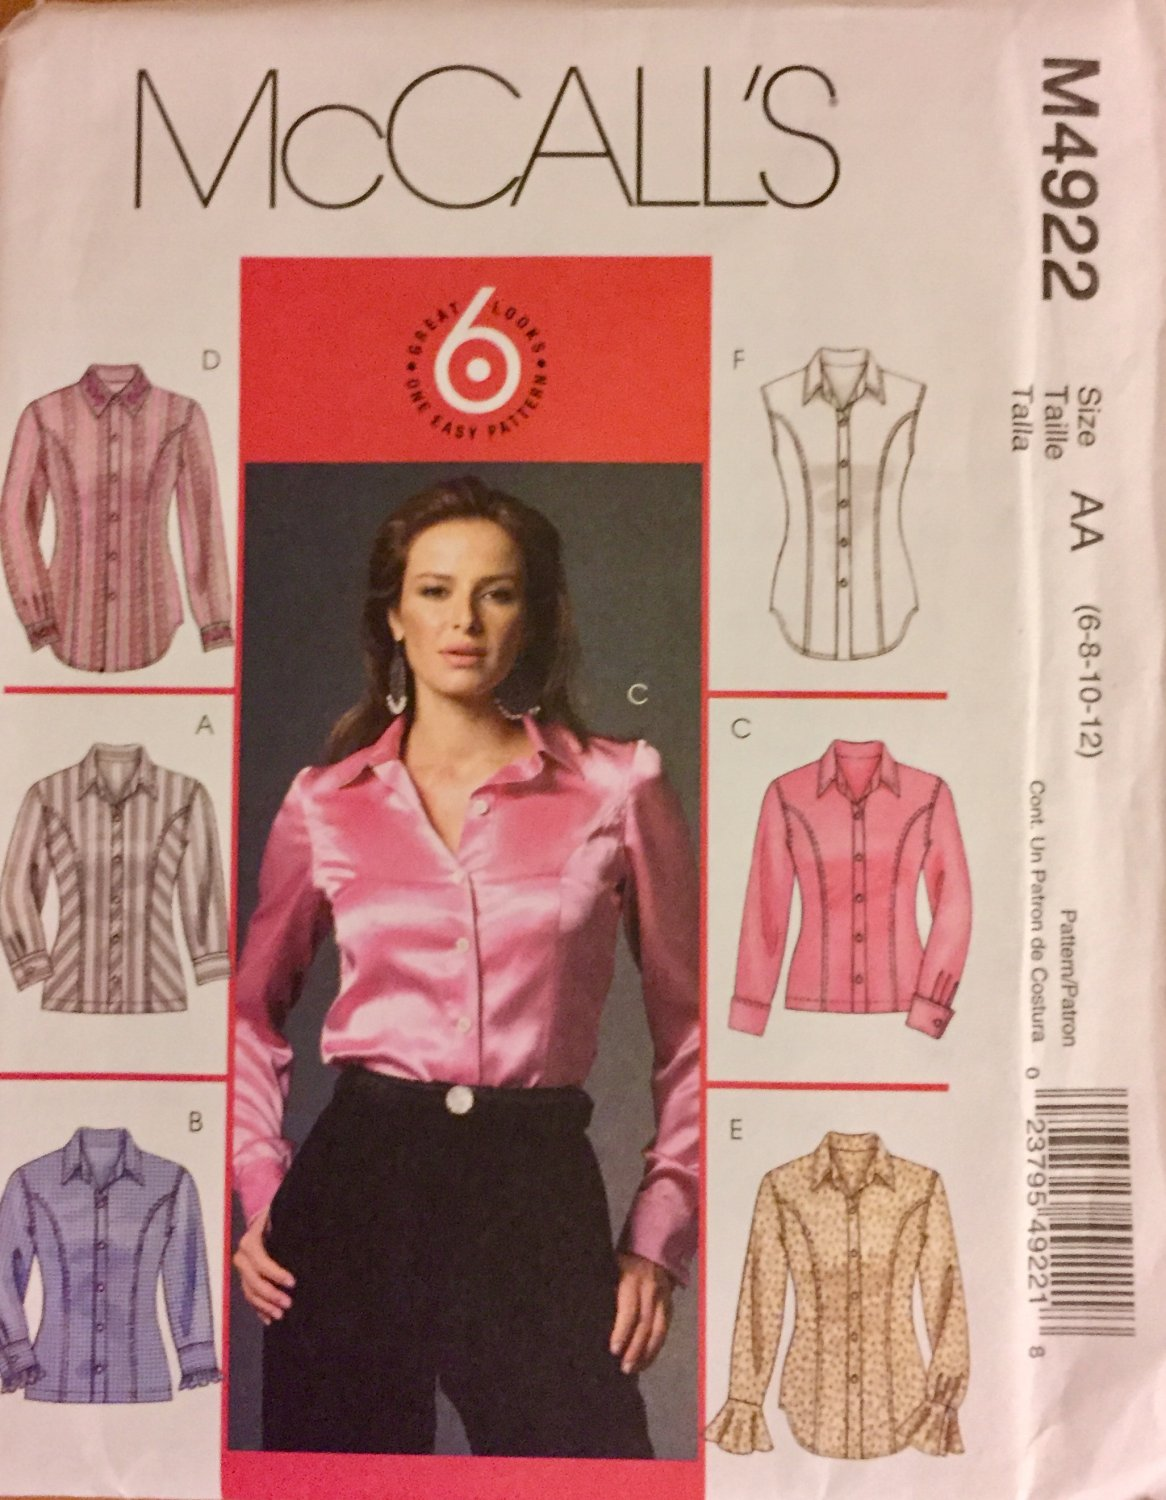 McCall's 4922 Size 6, 8, 10, 12 Women's sewing pattern:  Blouse shirt 6 great looks SOLD OUT